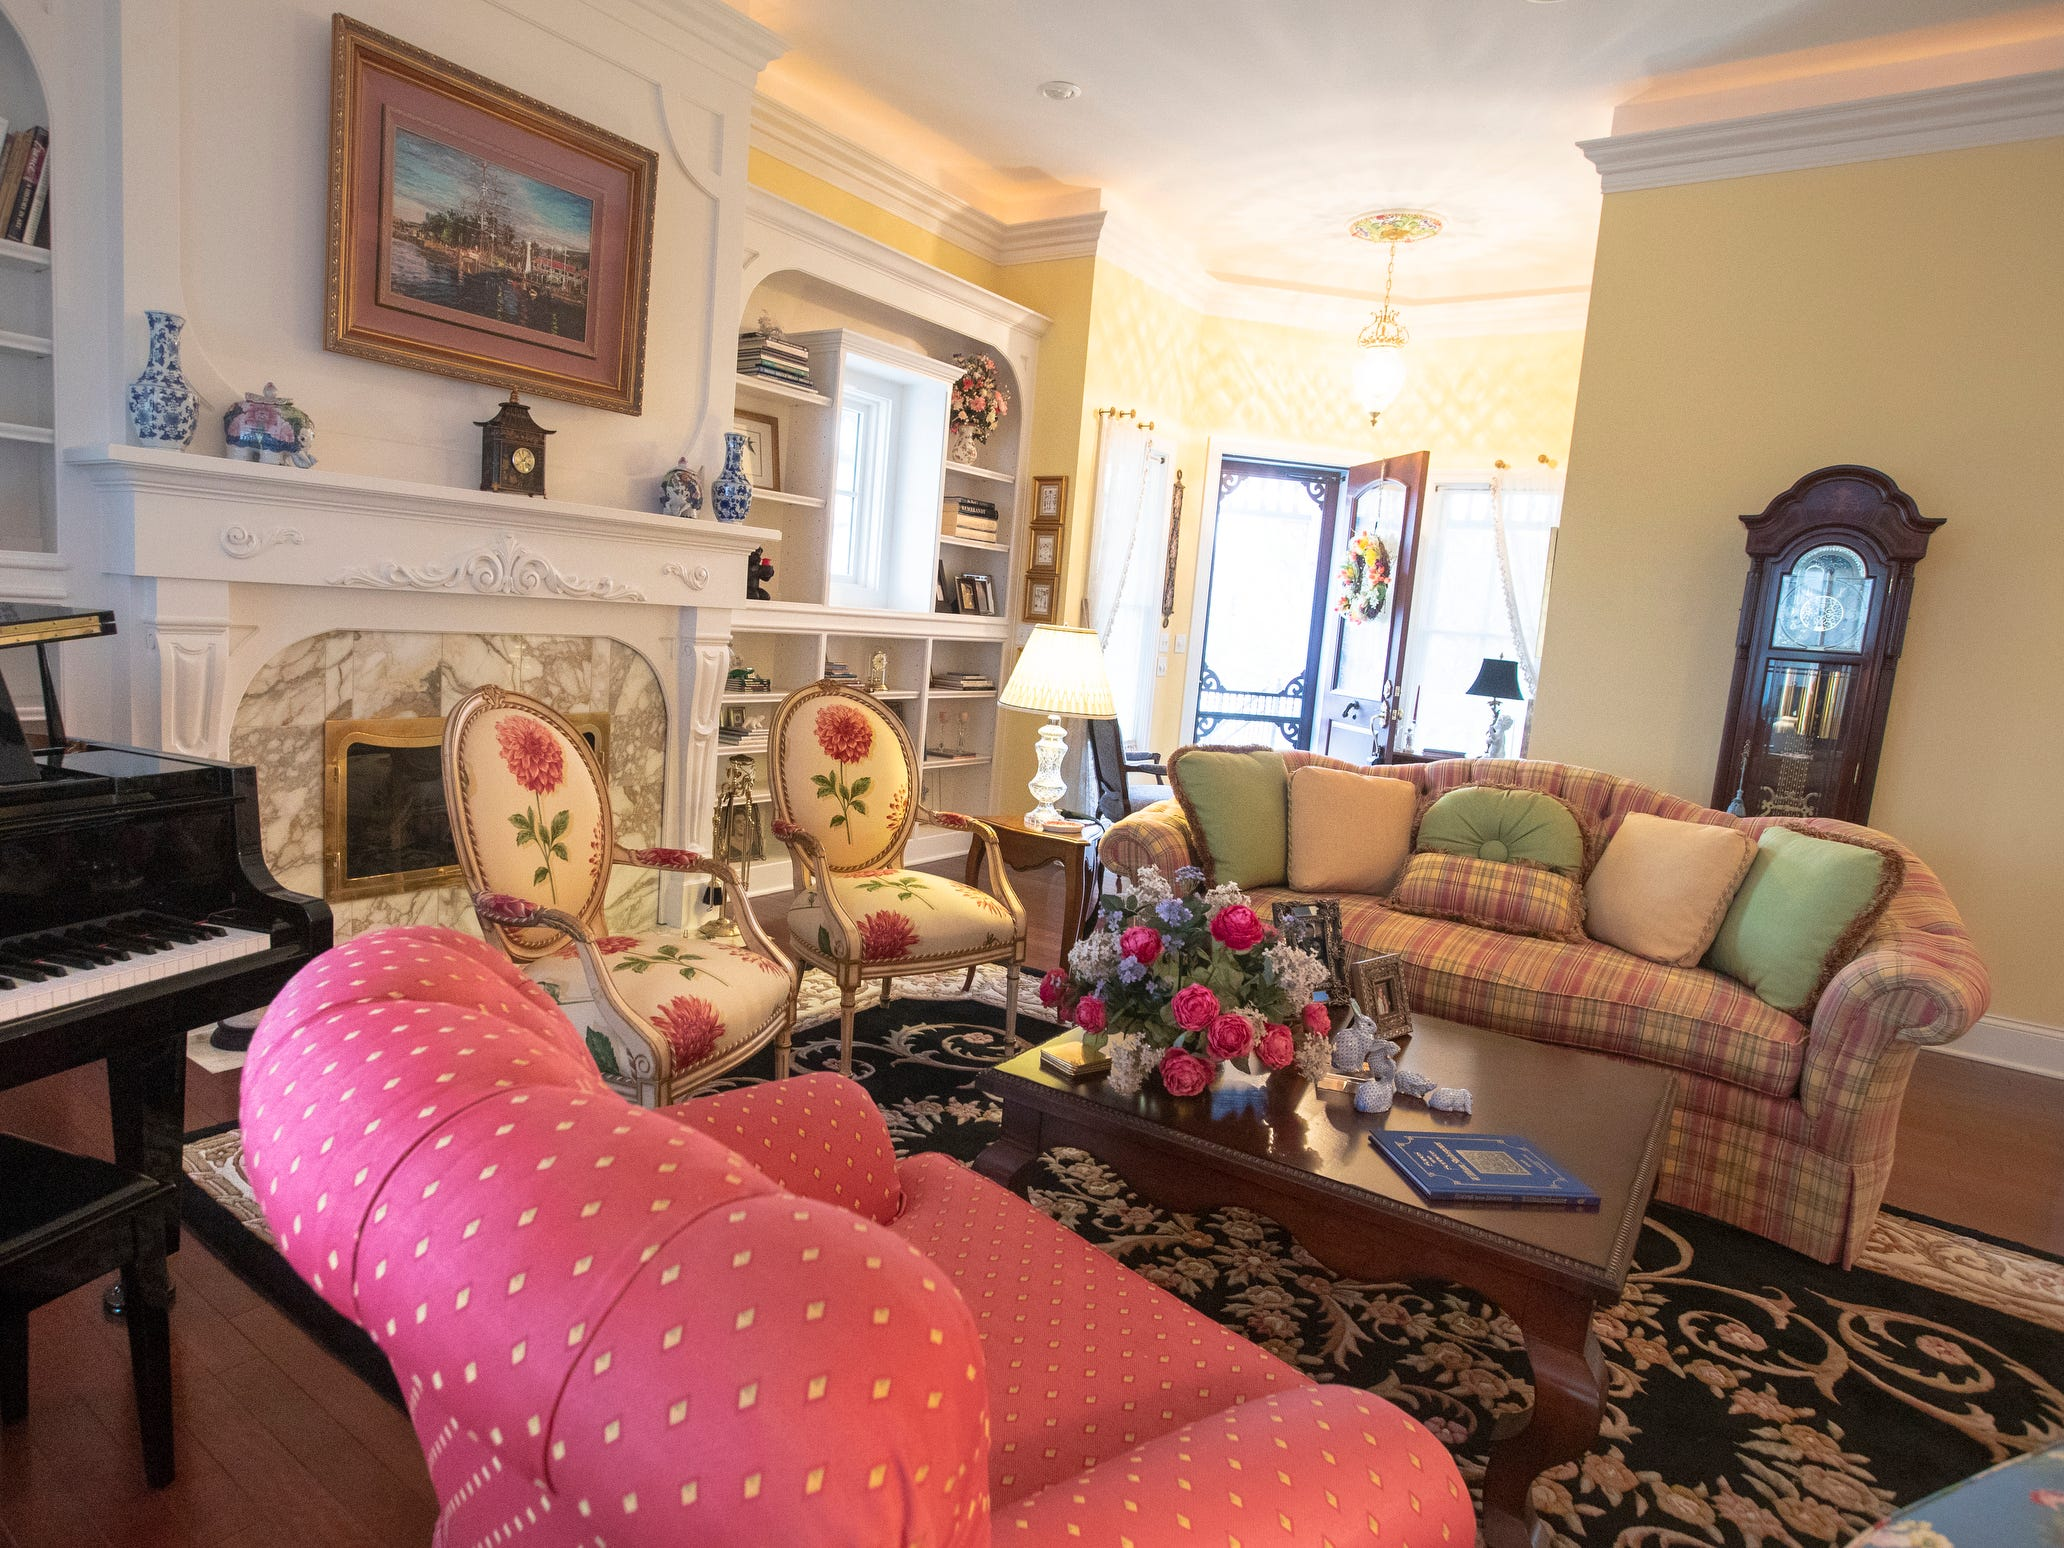 The front room inside a thirteen-year-old Victorian home in the Village of West Clay, Carmel, March 20, 2019. The house includes 16 rooms with five bedrooms, 8,348 square feet, and is listed at $1.275 million.